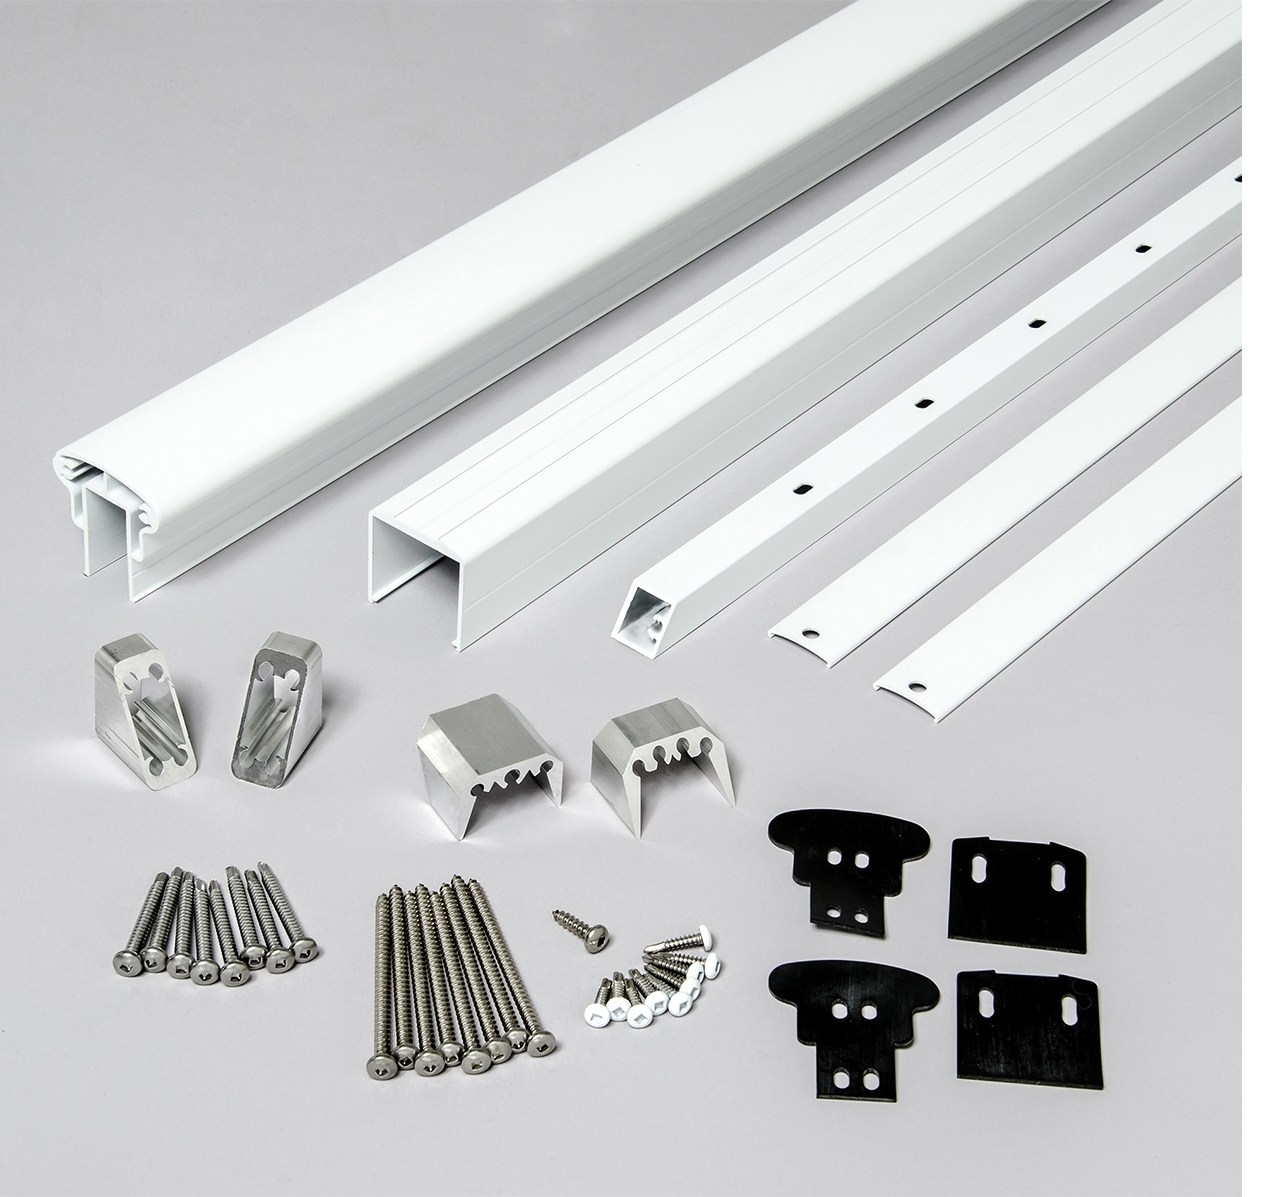 Rail Kit For Stair Railings White By Feeney Designrail U S | Black And White Stair Railing | Wall | Wrought Iron | Handrail | Victorian | Contemporary